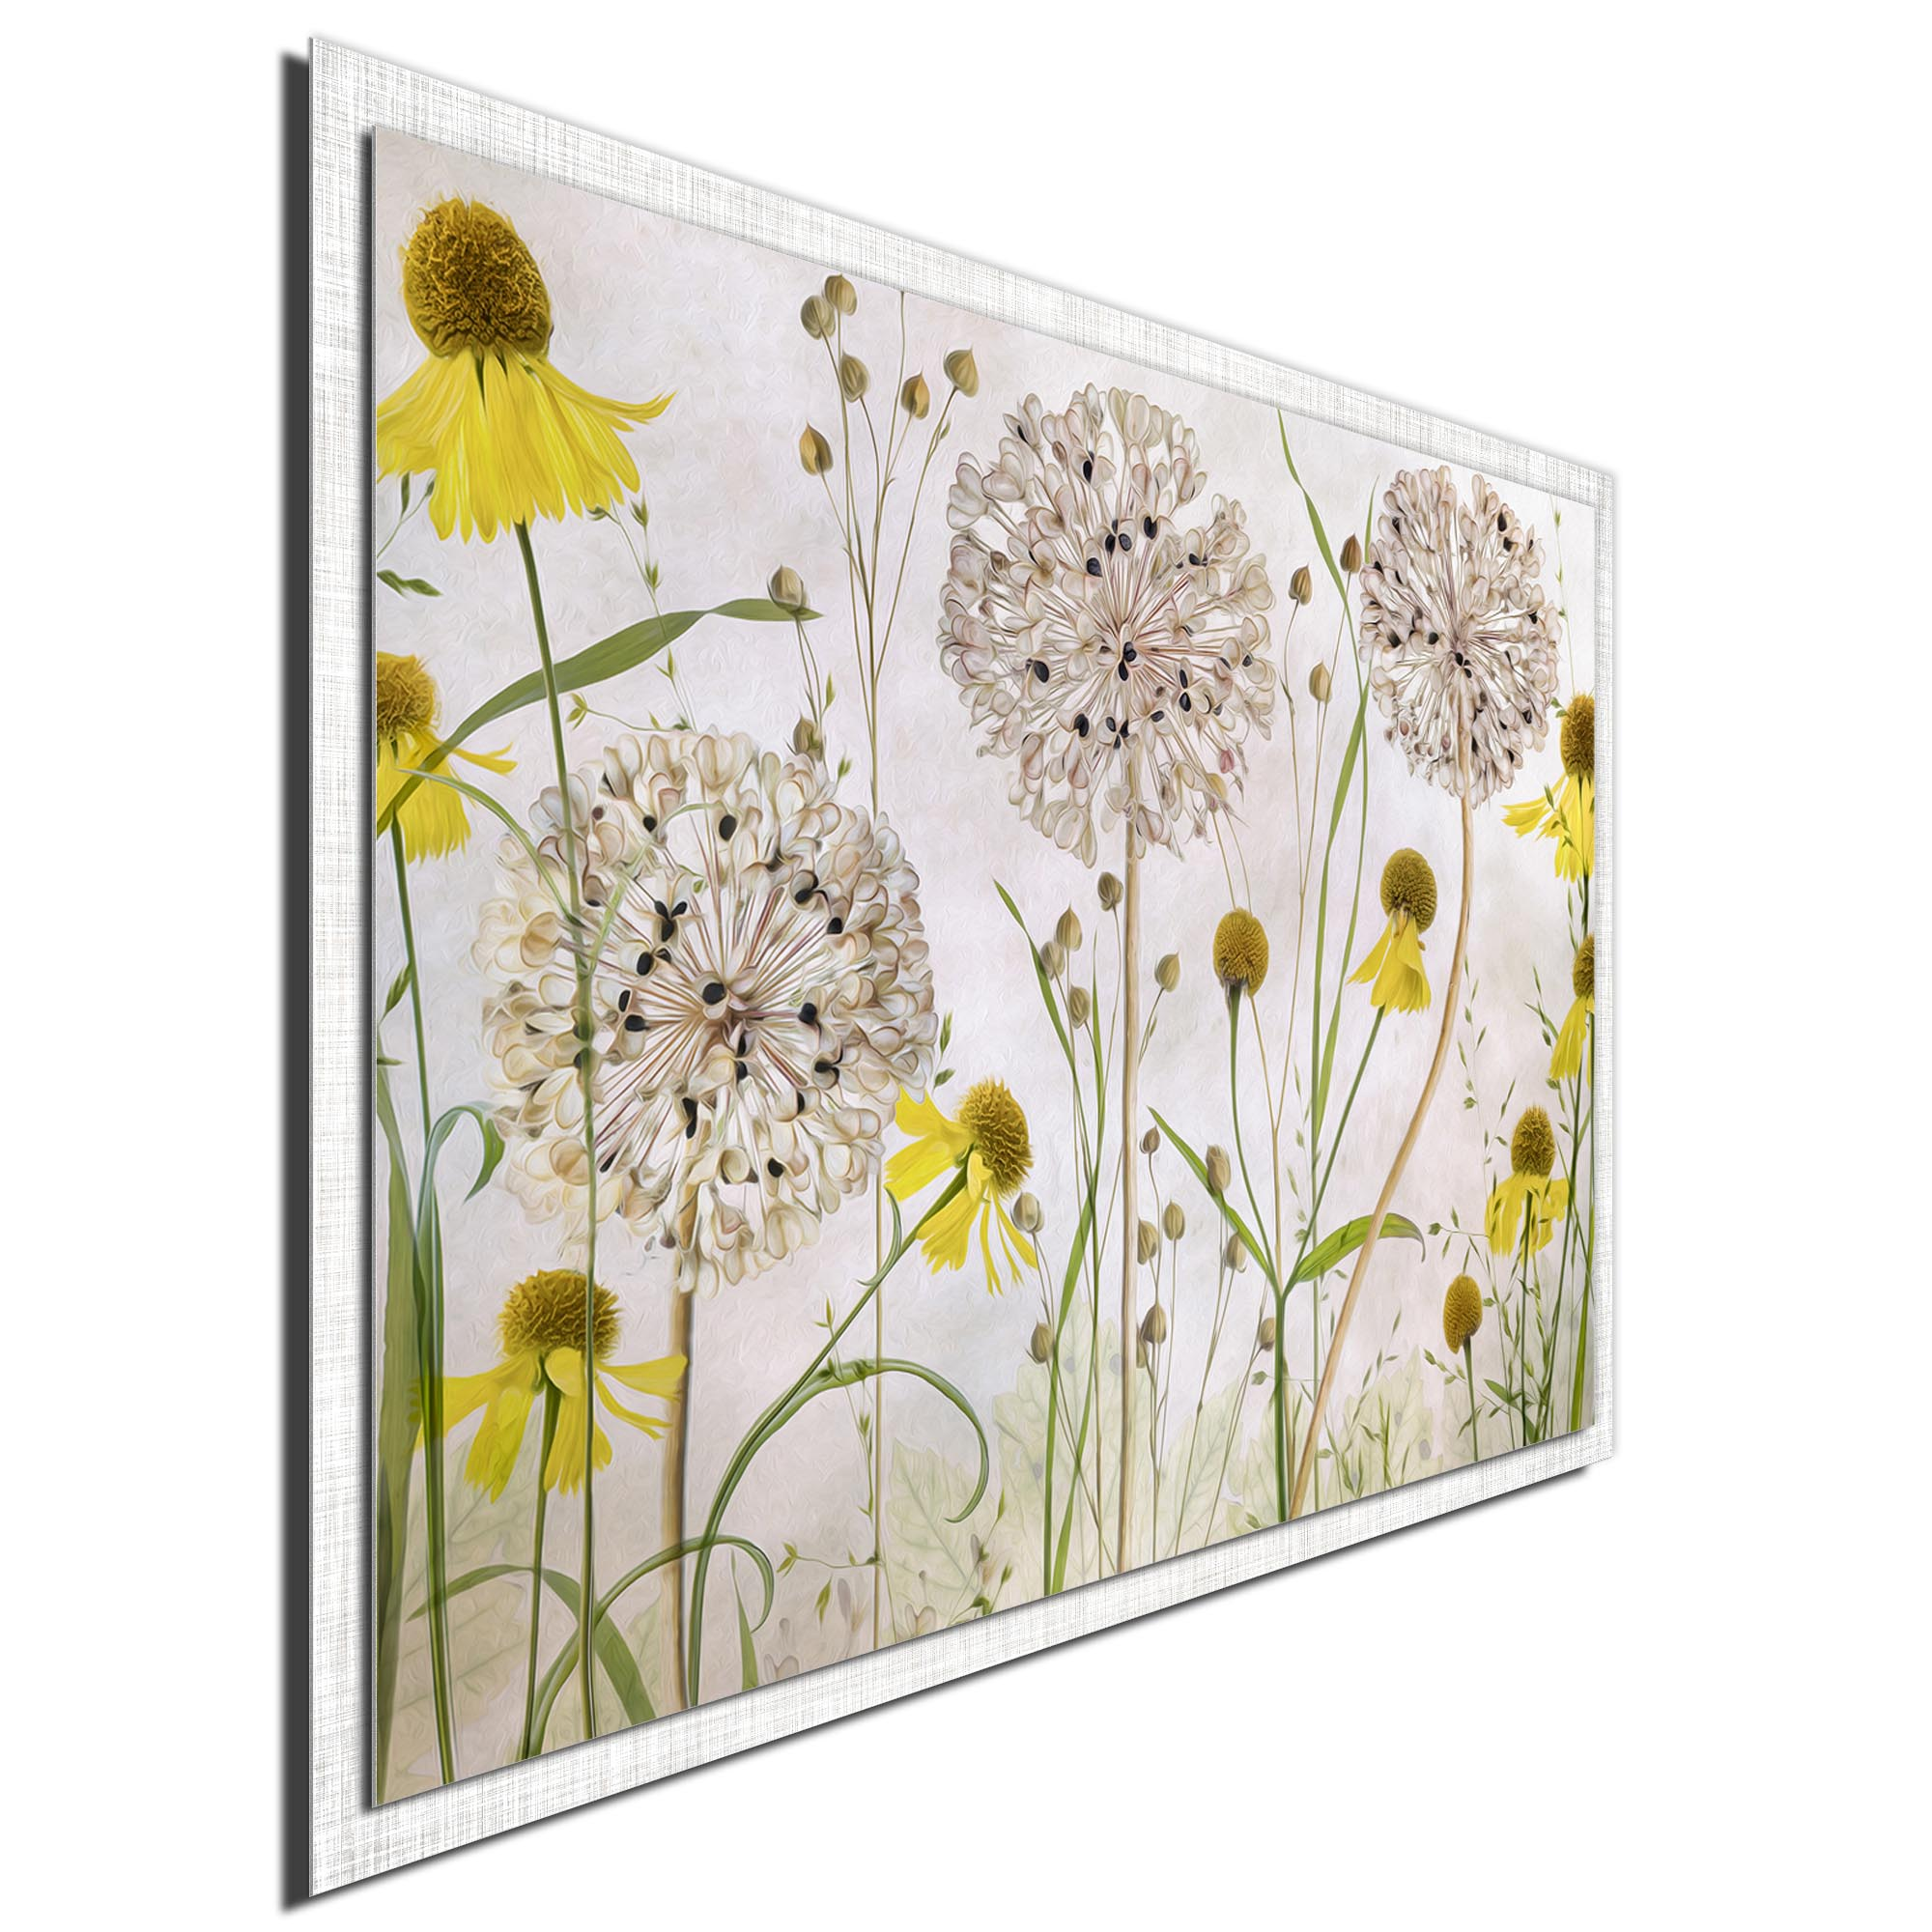 Alliums and Heleniums by Mandy Disher - Modern Farmhouse Floral on Metal - Image 2